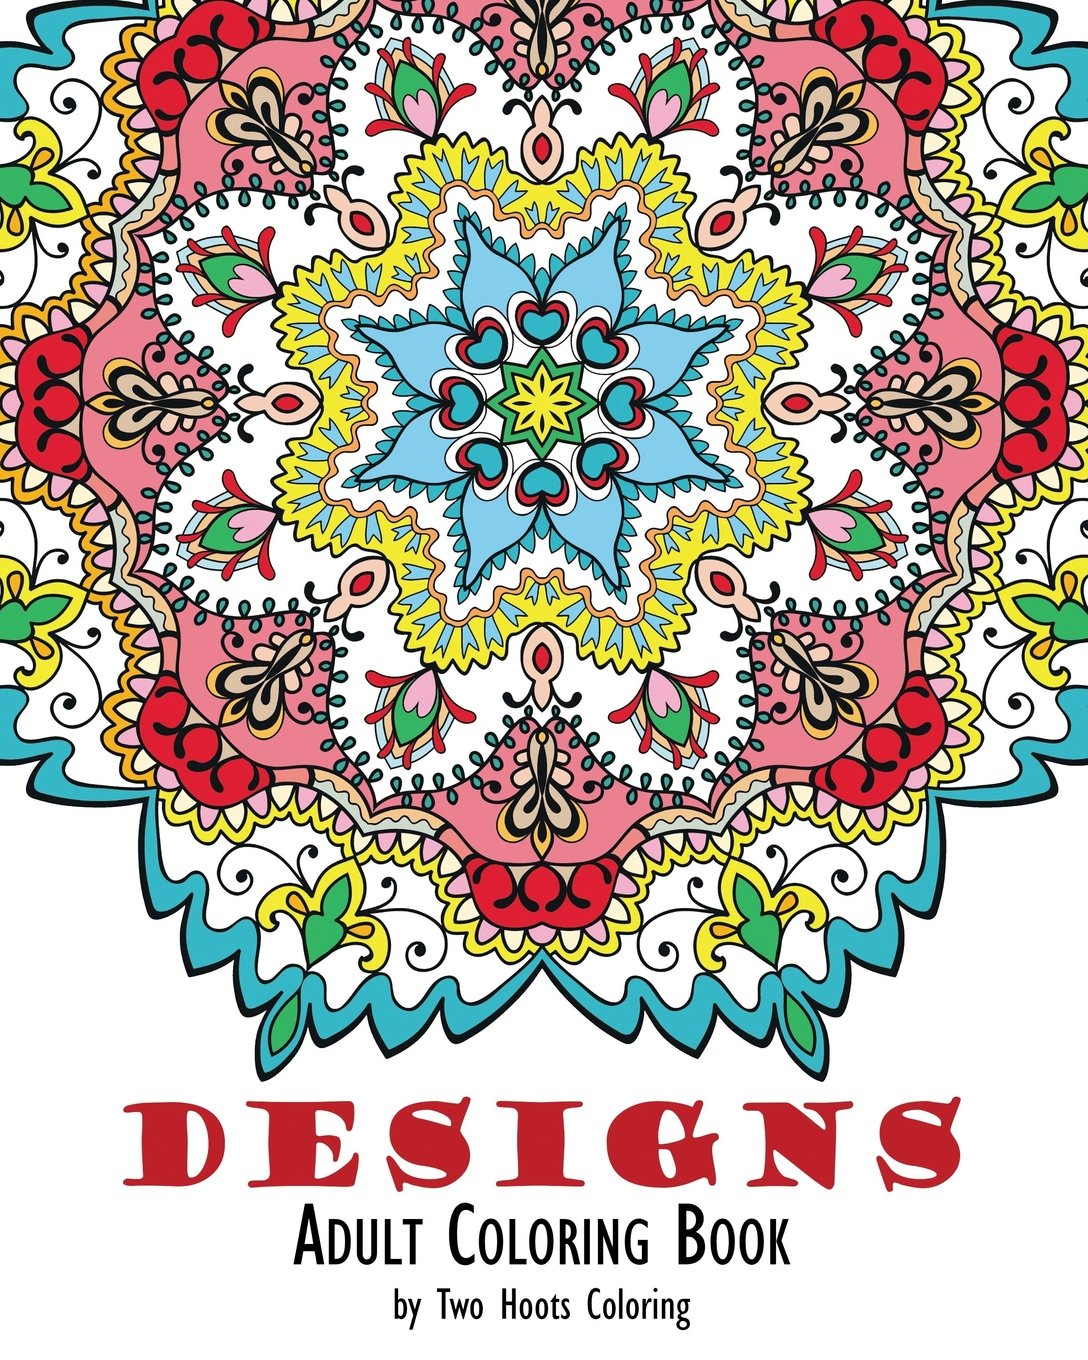 Adult Coloring Book ISBN-13 9780692591079